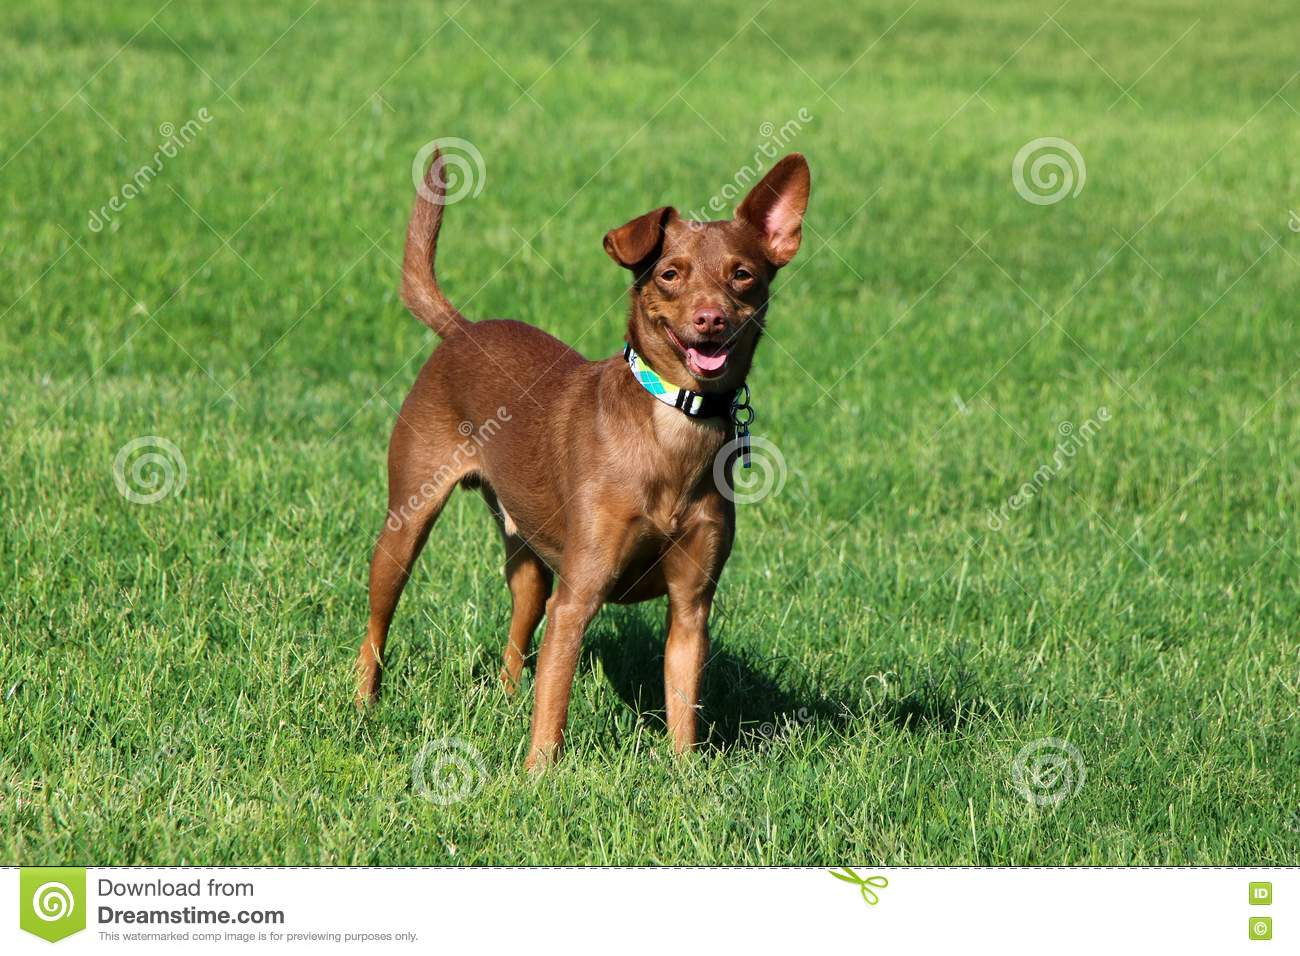 Dog Standing in the Grass